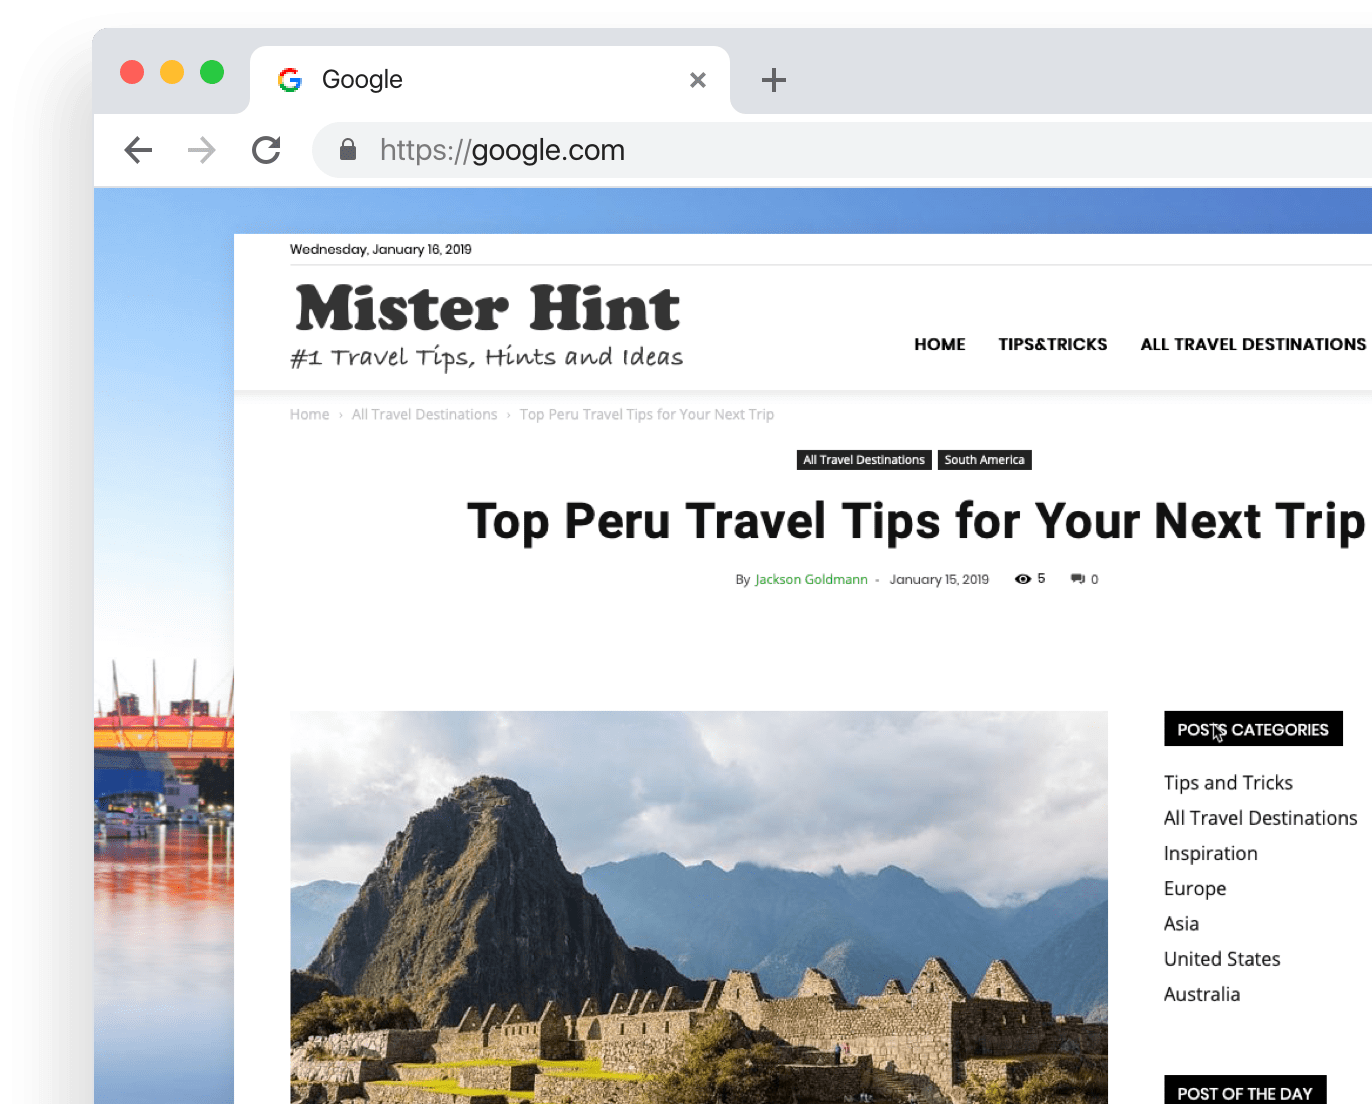 Travel Blog for MisterHint.com